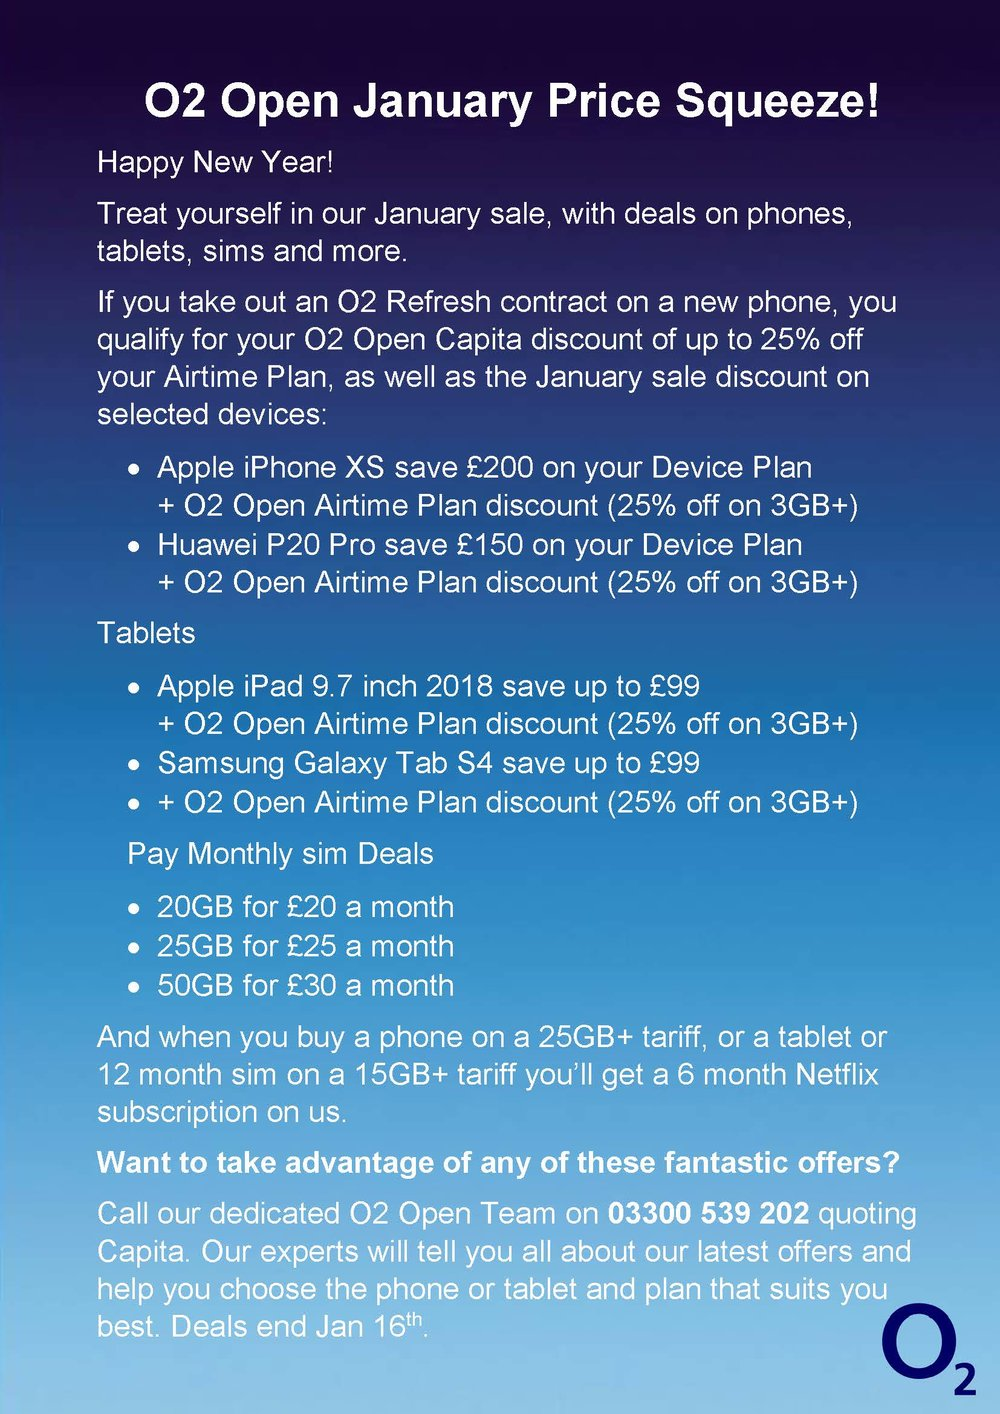 O2 Open - Capita January Price Squeeze.jpg